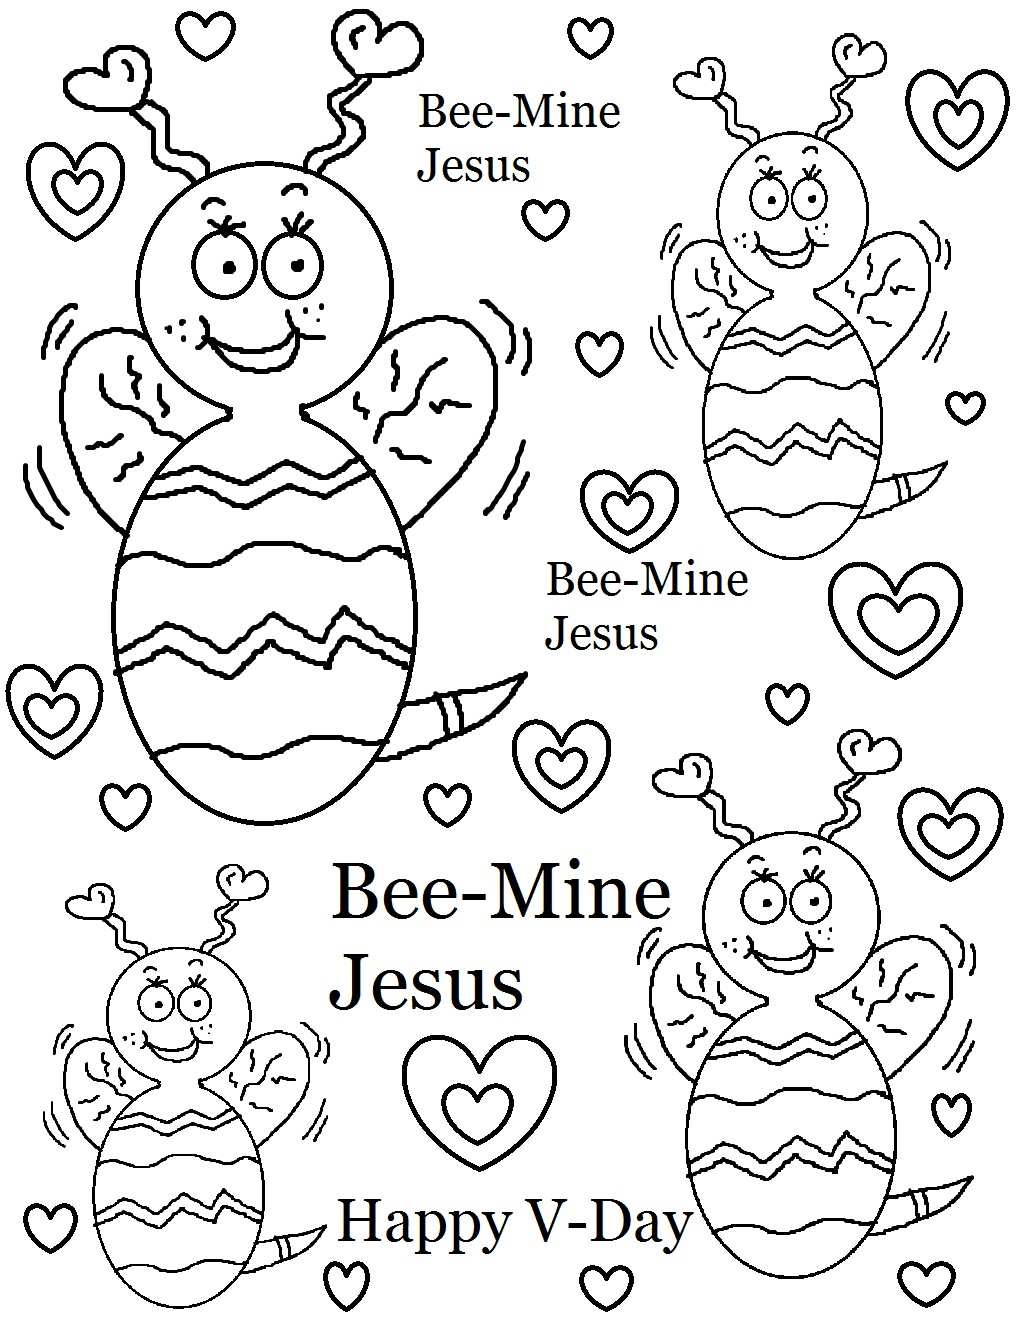 jesus valentine coloring pages - photo#8